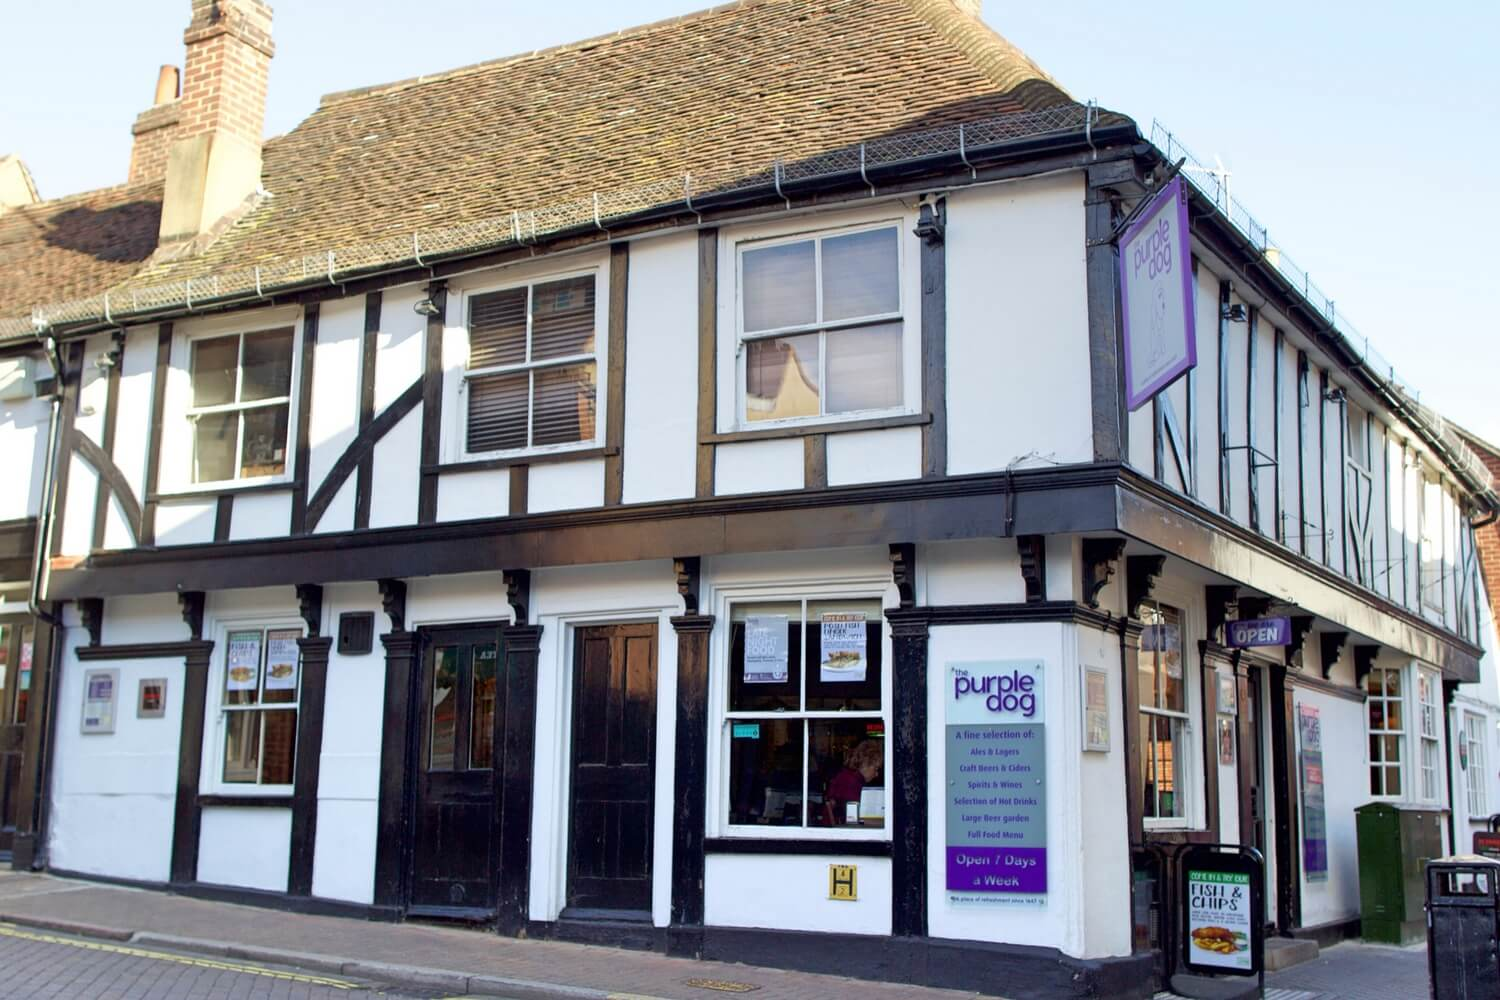 The Purple Dog - Outside of Pub